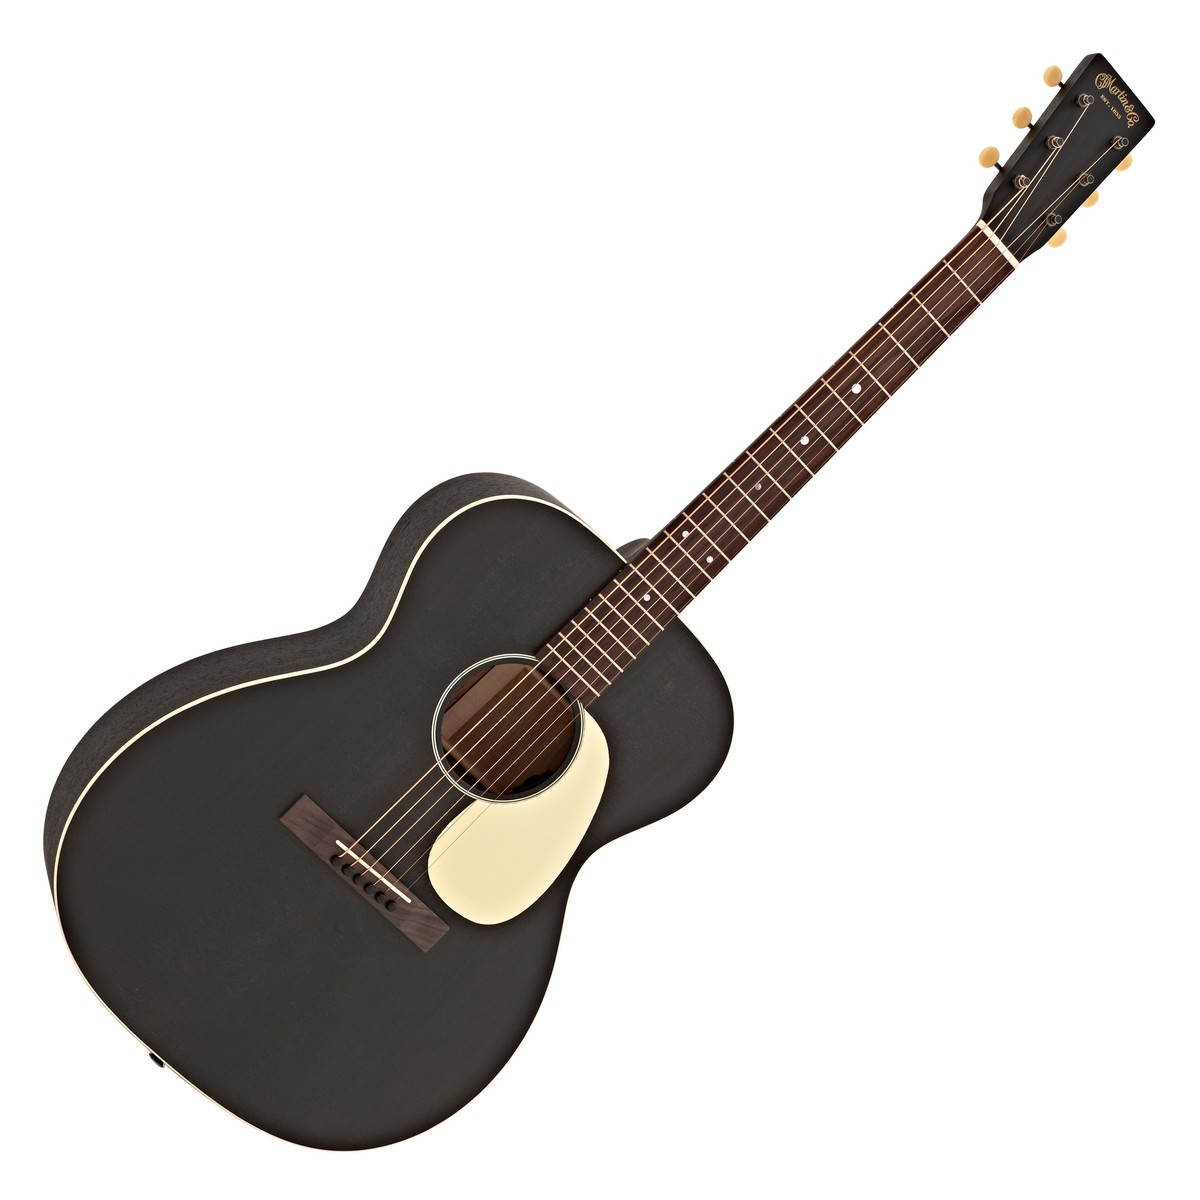 Click to view product details and reviews for Martin 000 17e Electro Acoustic Guitar Black Smoke.